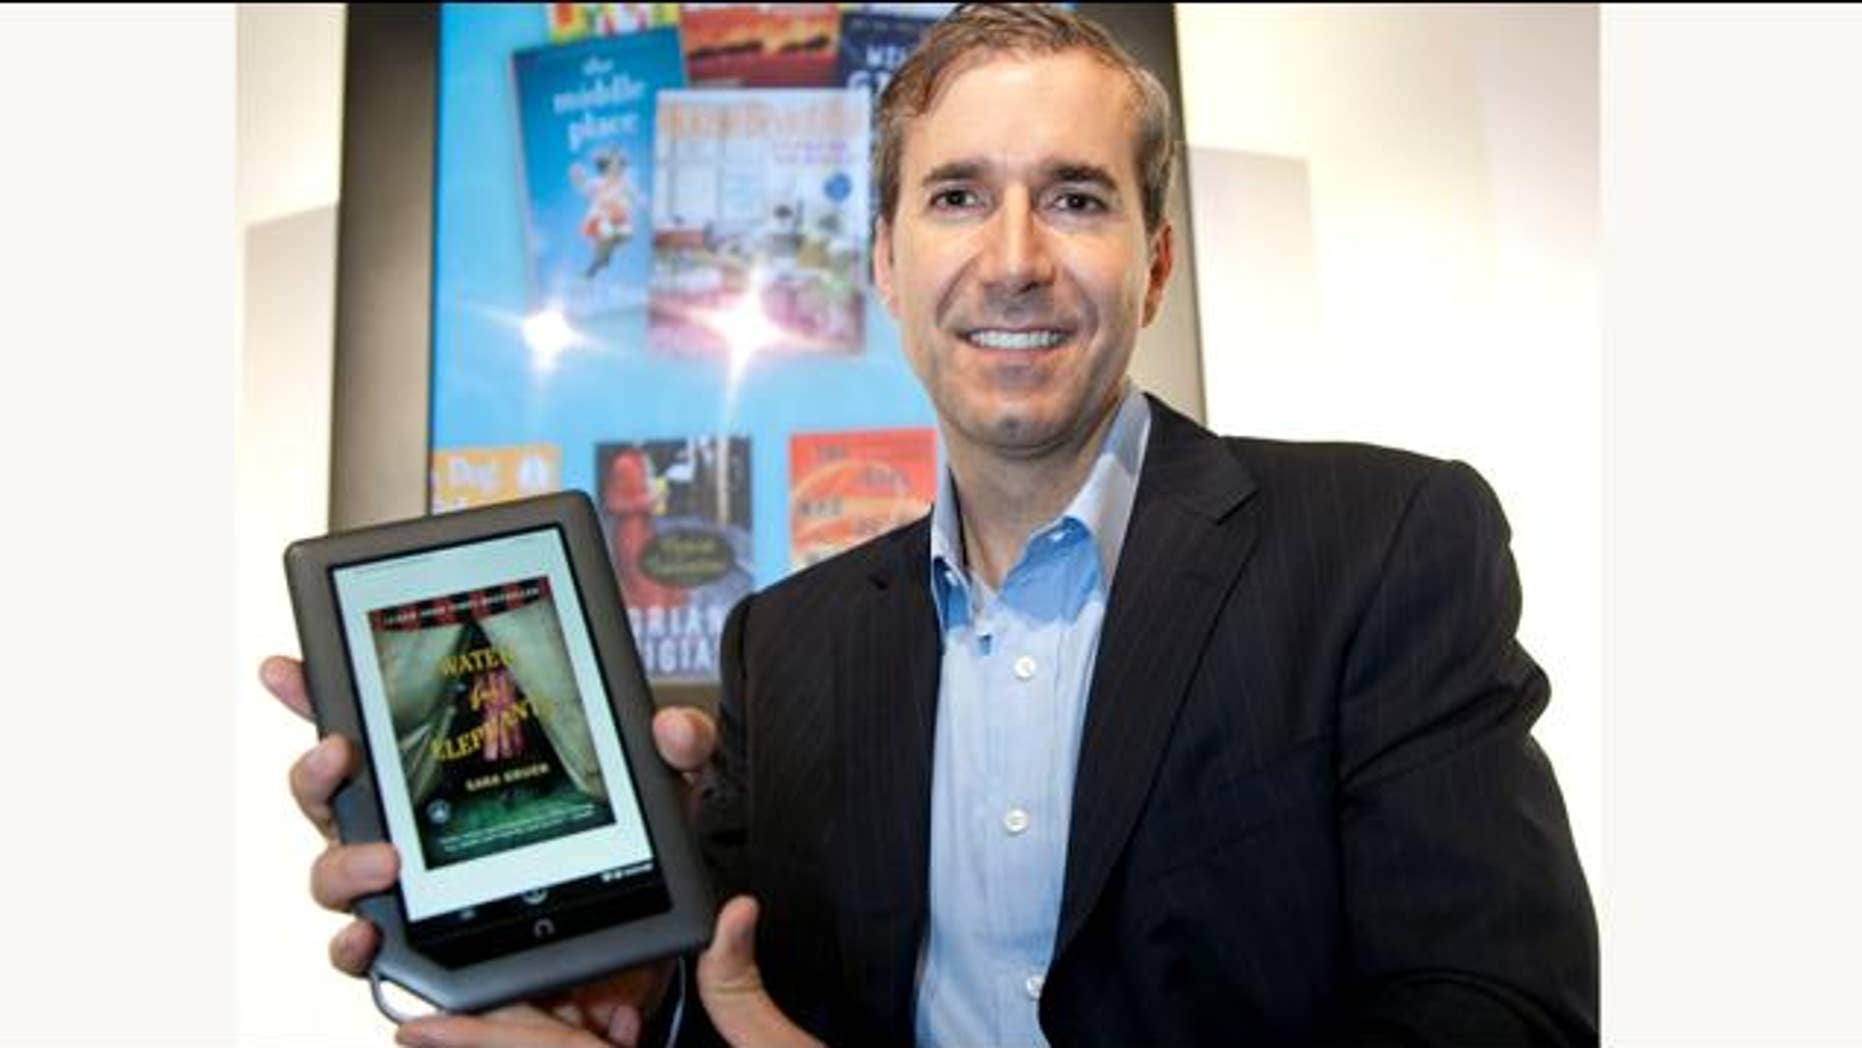 William Lynch, Chief Executive Officer of Barnes & Noble, holds the new NOOKcolor, the first full-color touch reader's tablet, prior to its introduction in New York on Tuesday, October 26, 2010. Designed to read many types of content, NOOKcolor has a 7-inch display that showcases books, a large selection of magazines and newspapers and children's picture books in rich color.